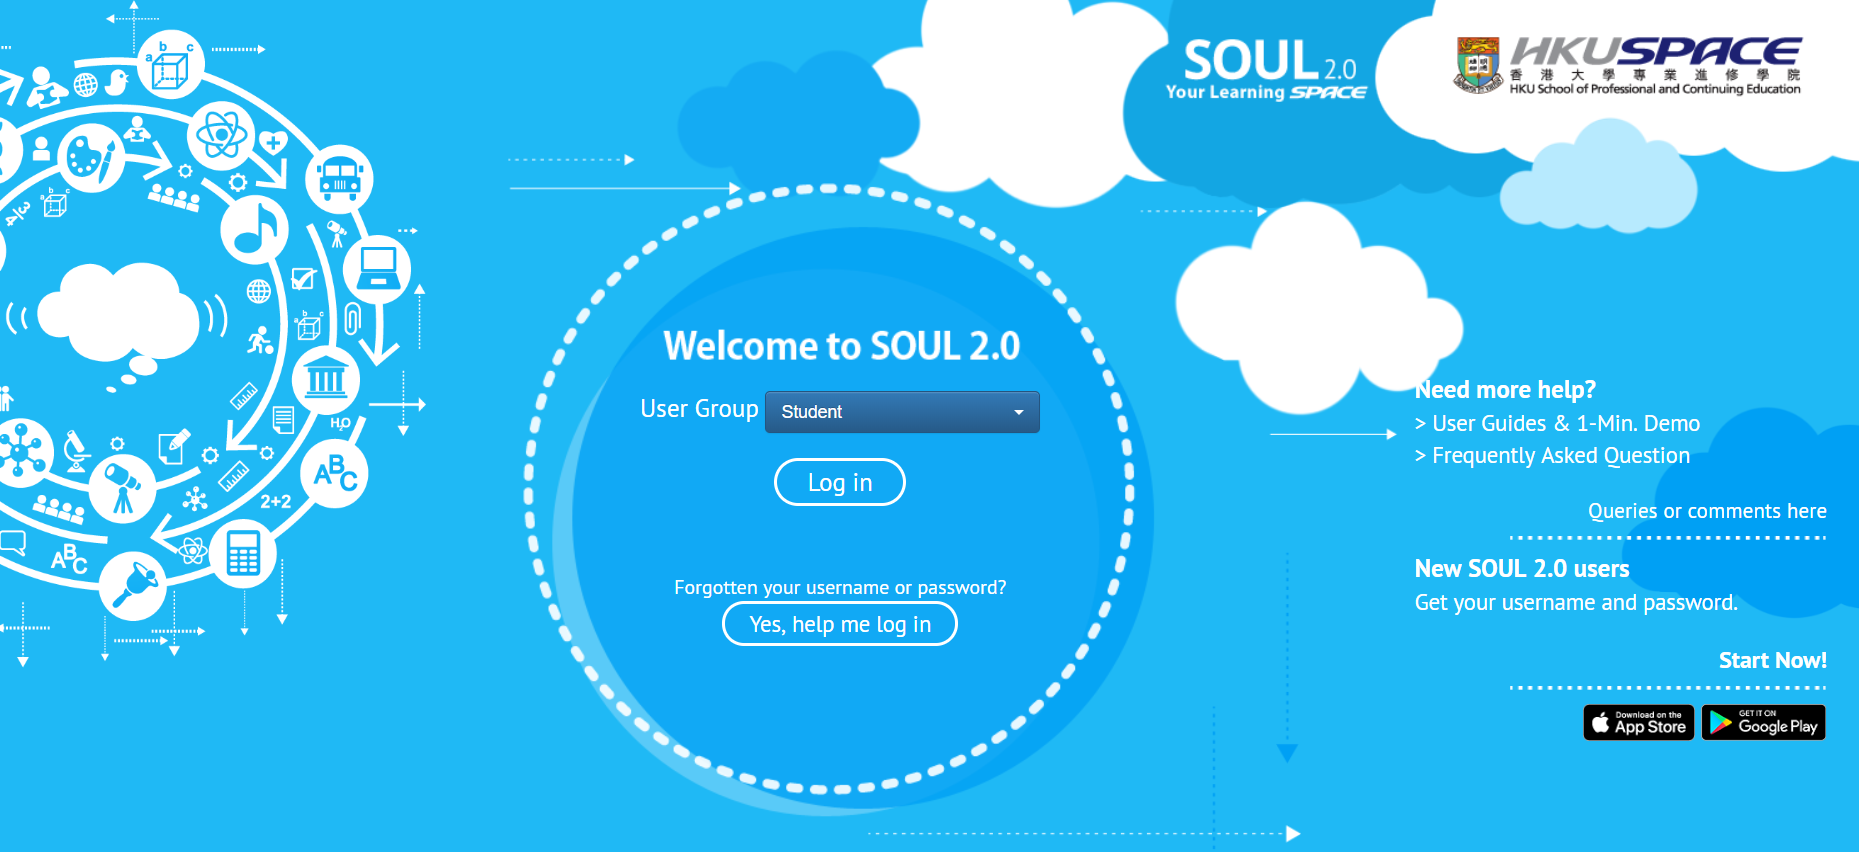 SOUL 2.0 new homepage